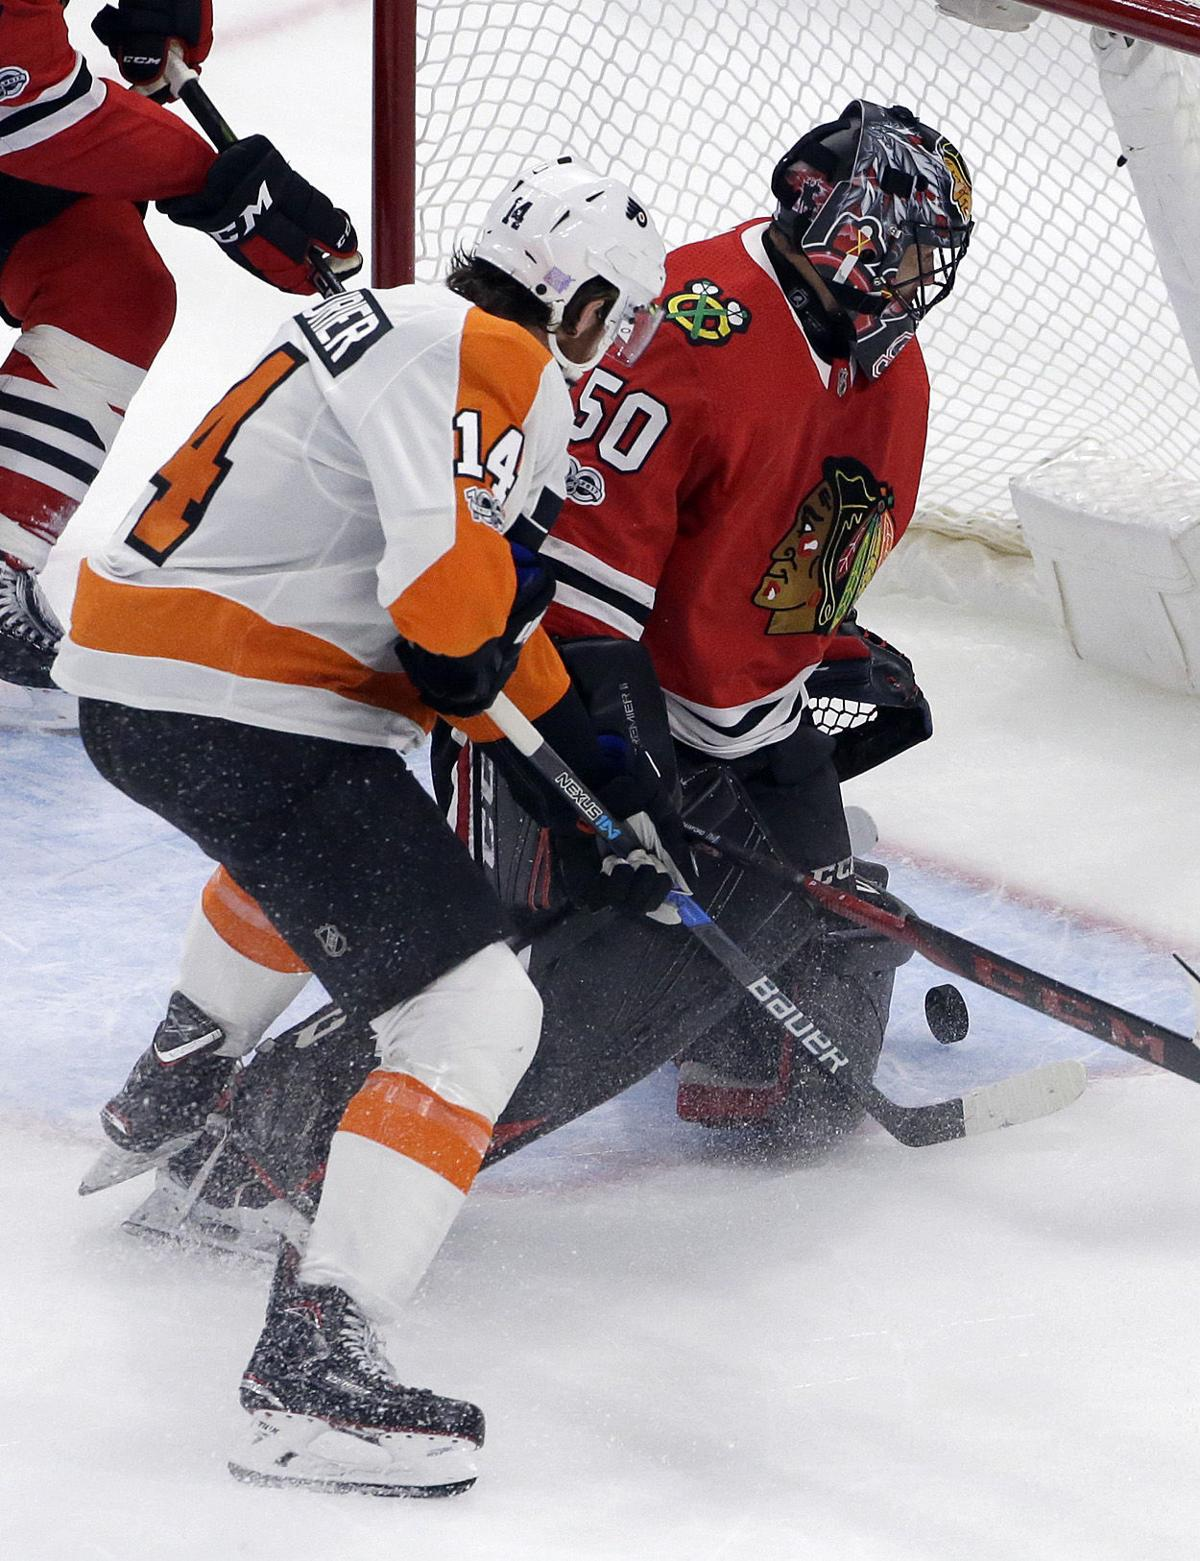 Flyers Blackhawks Hockey